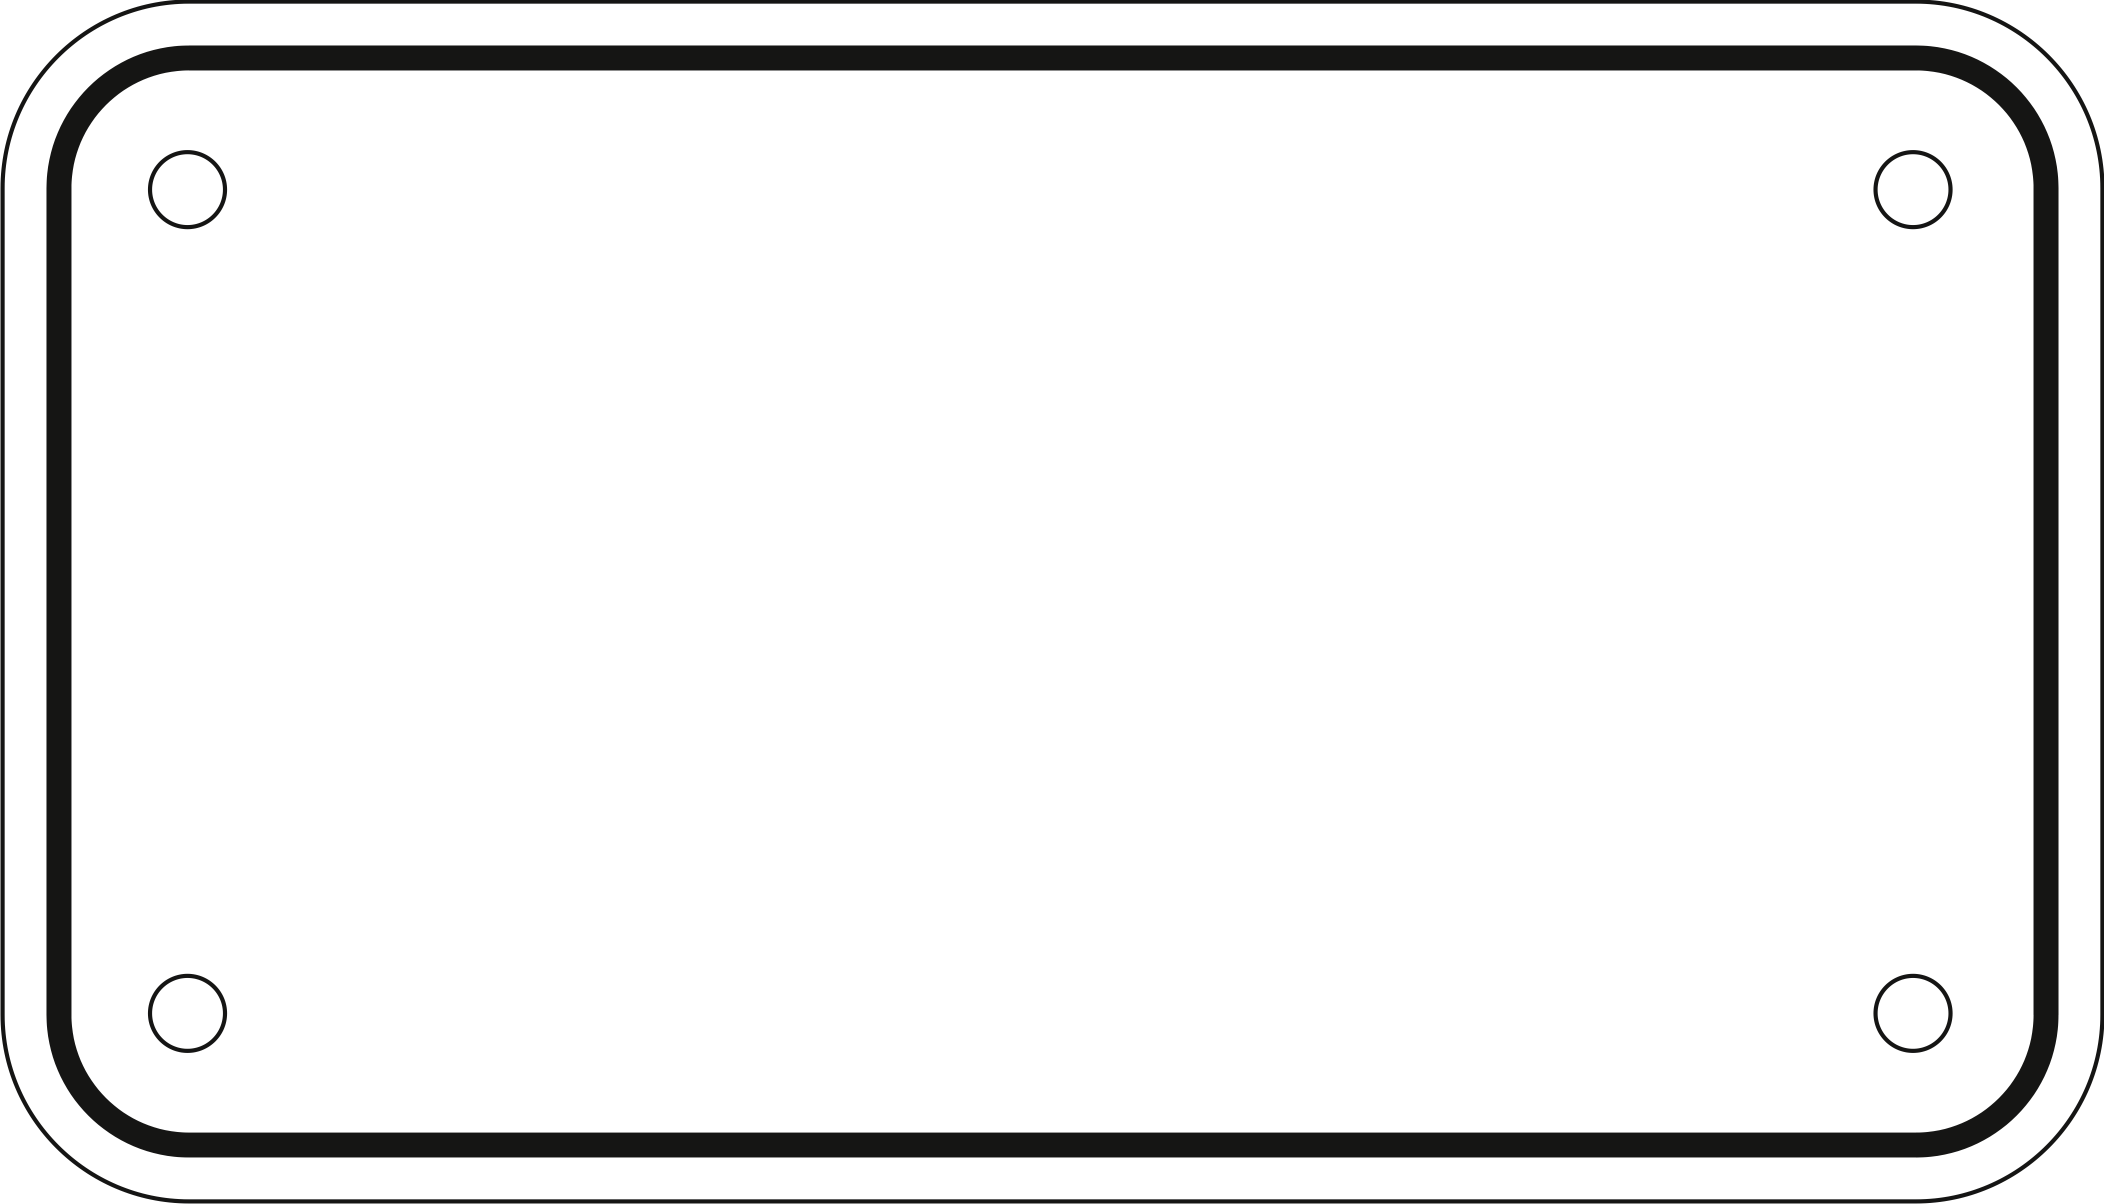 License Plate Number Clipart